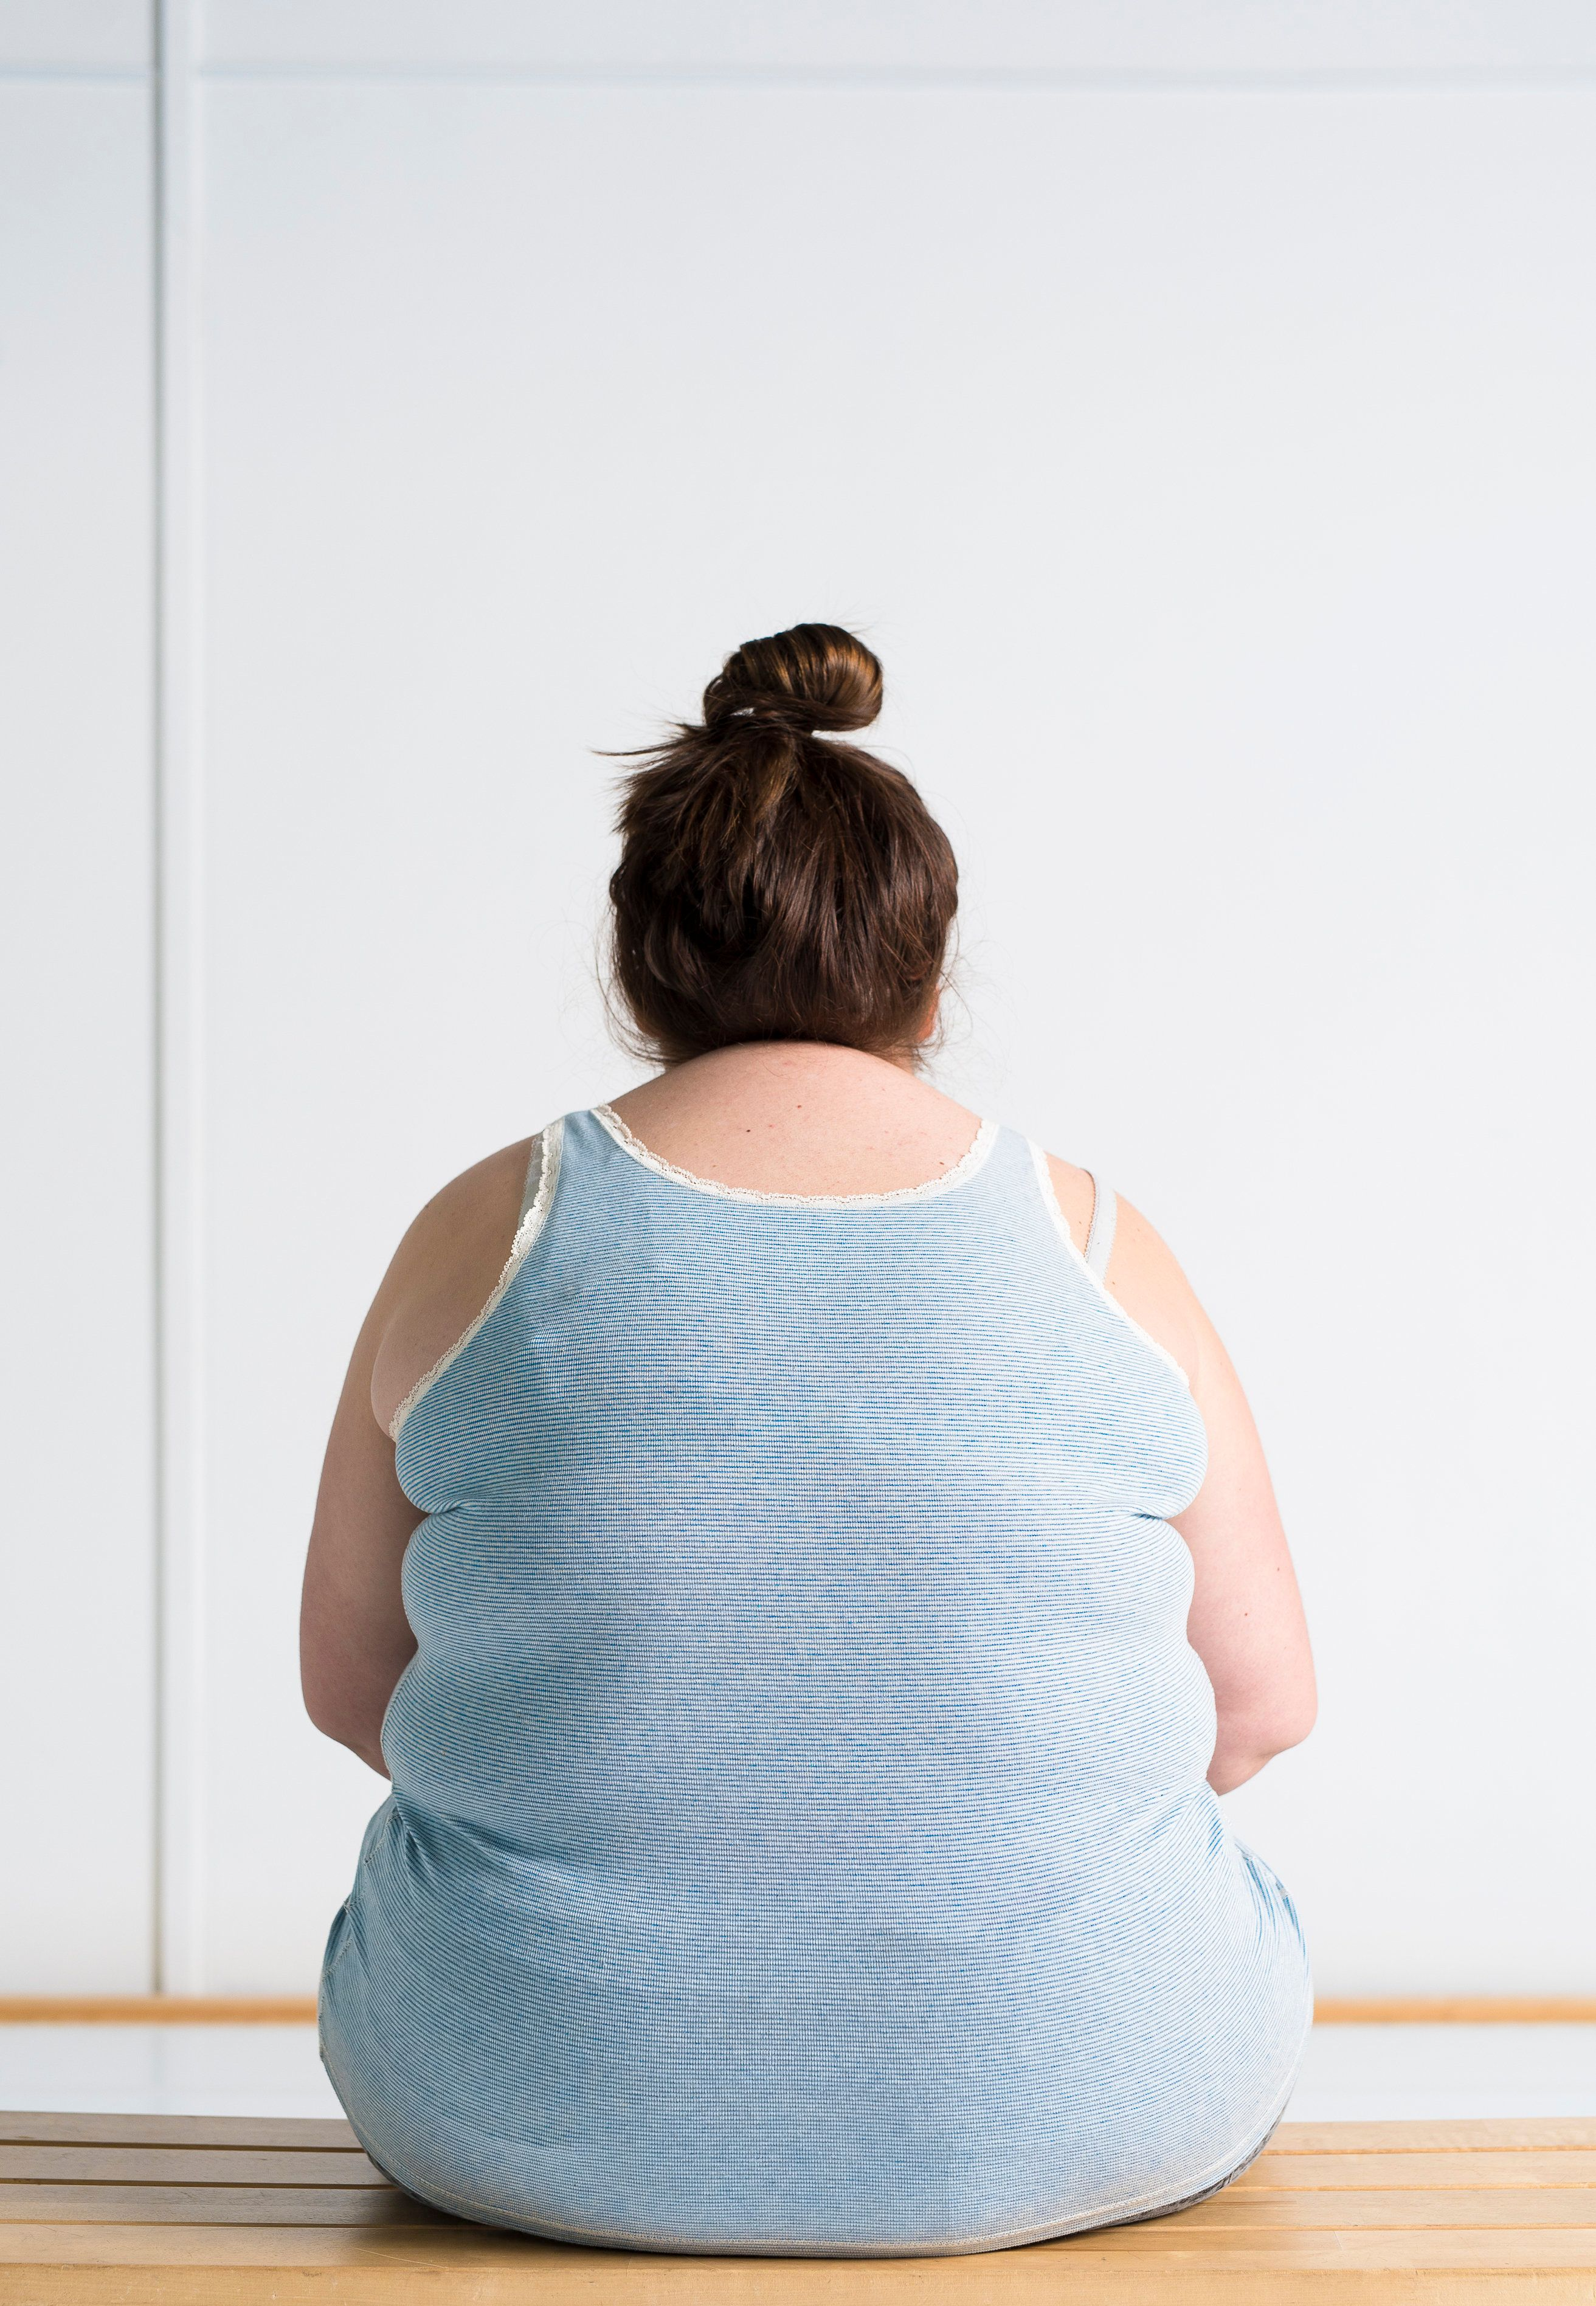 Obesity Linked To 'Reduced Cognitive Performance And Self-Control', Study